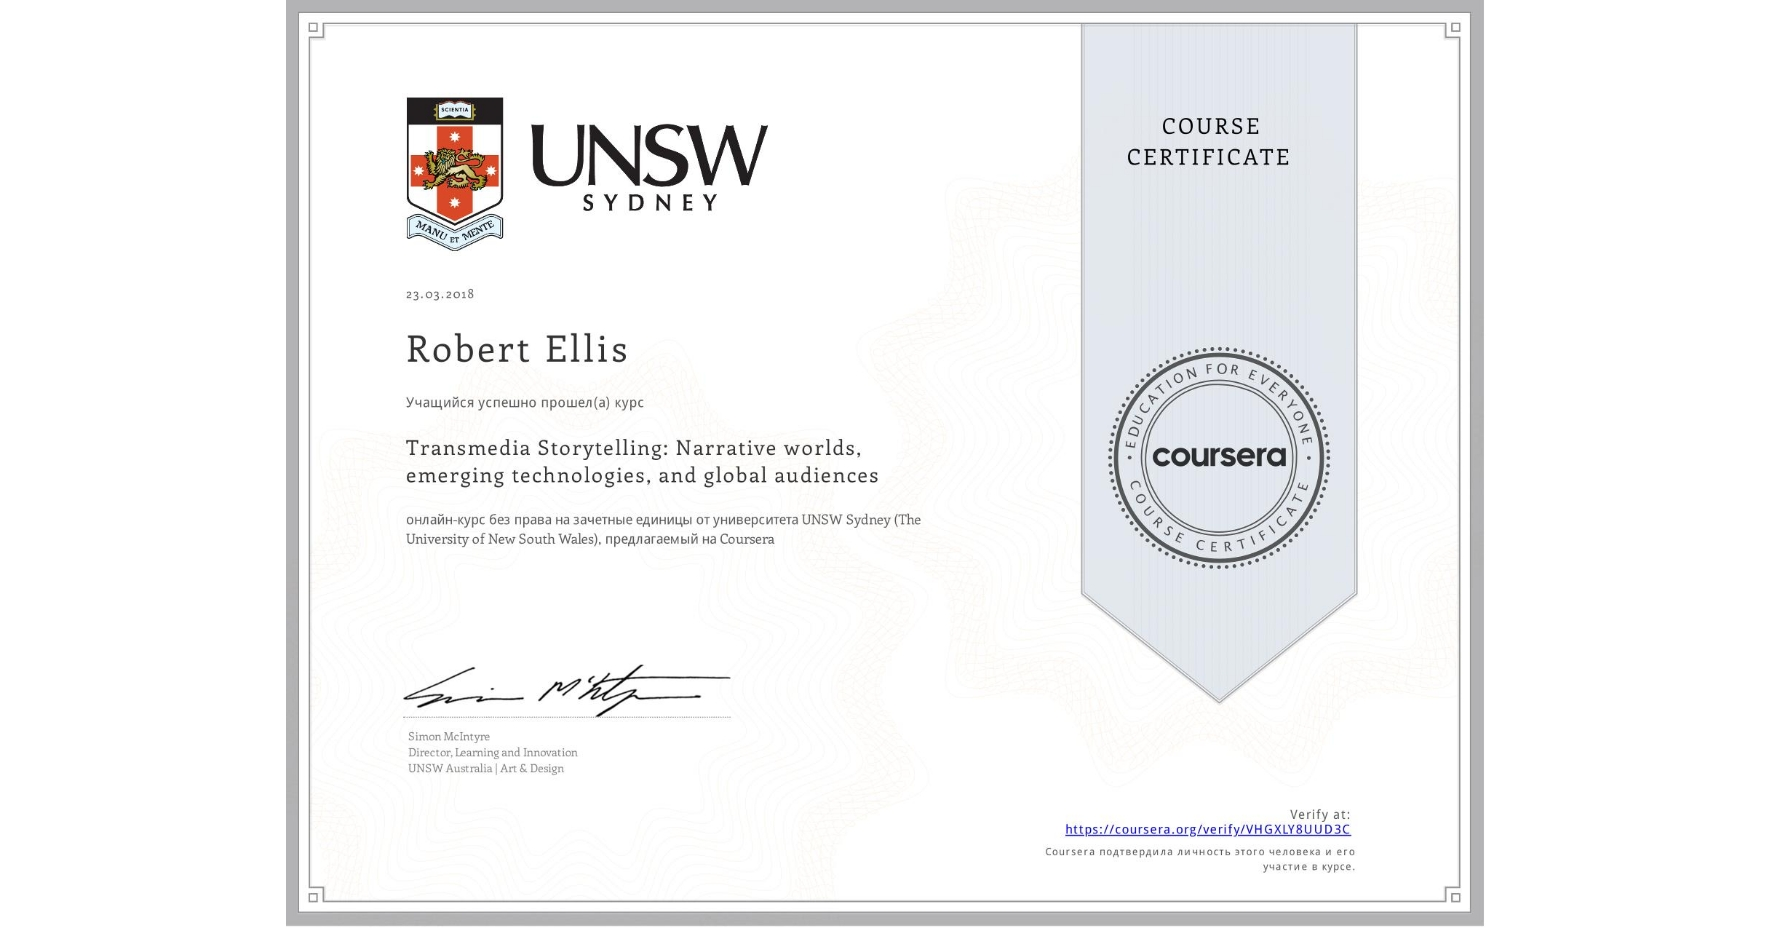 View certificate for Robert Ellis, Transmedia Storytelling: Narrative worlds, emerging technologies, and global audiences, an online non-credit course authorized by UNSW Sydney (The University of New South Wales) and offered through Coursera